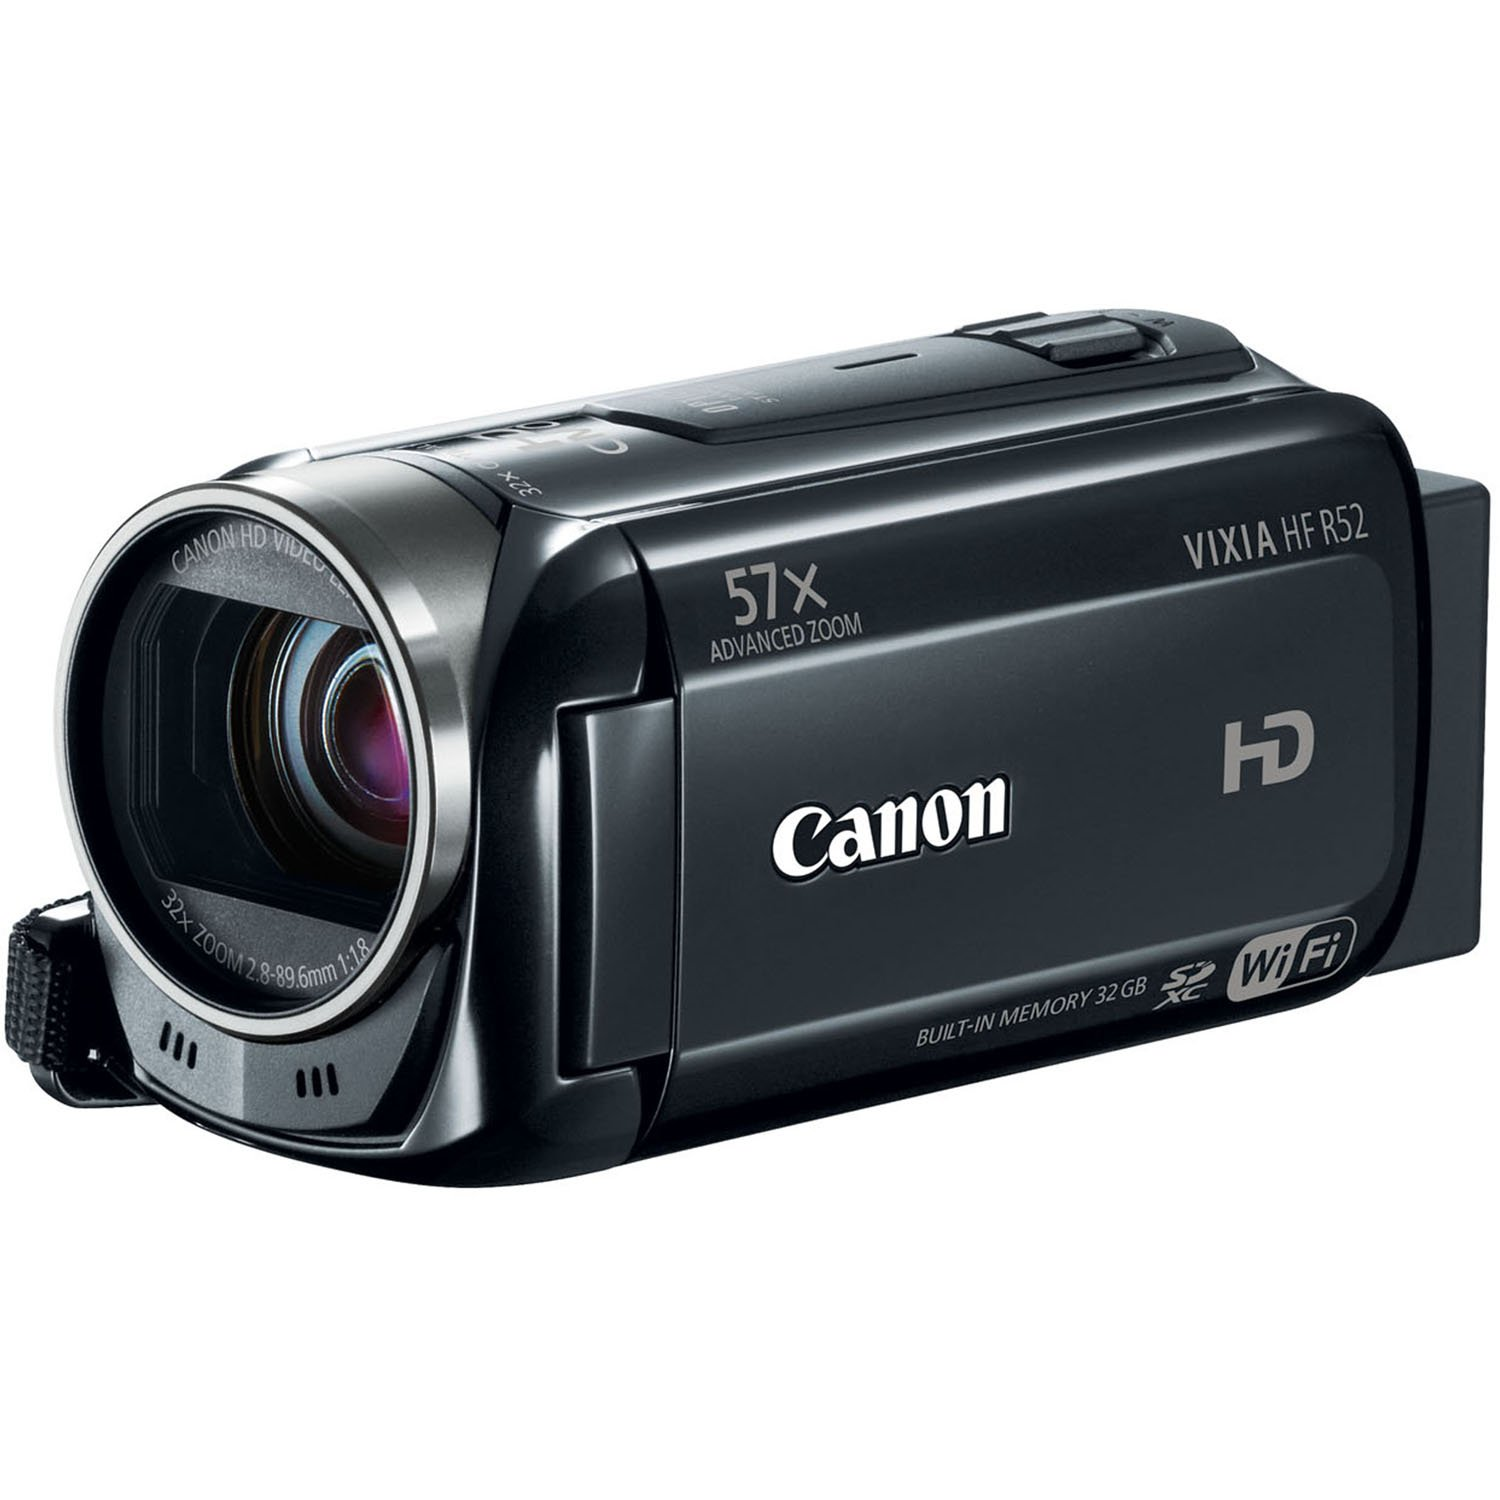 Canon VIXIA HF-R52 HD Digital Camcorder